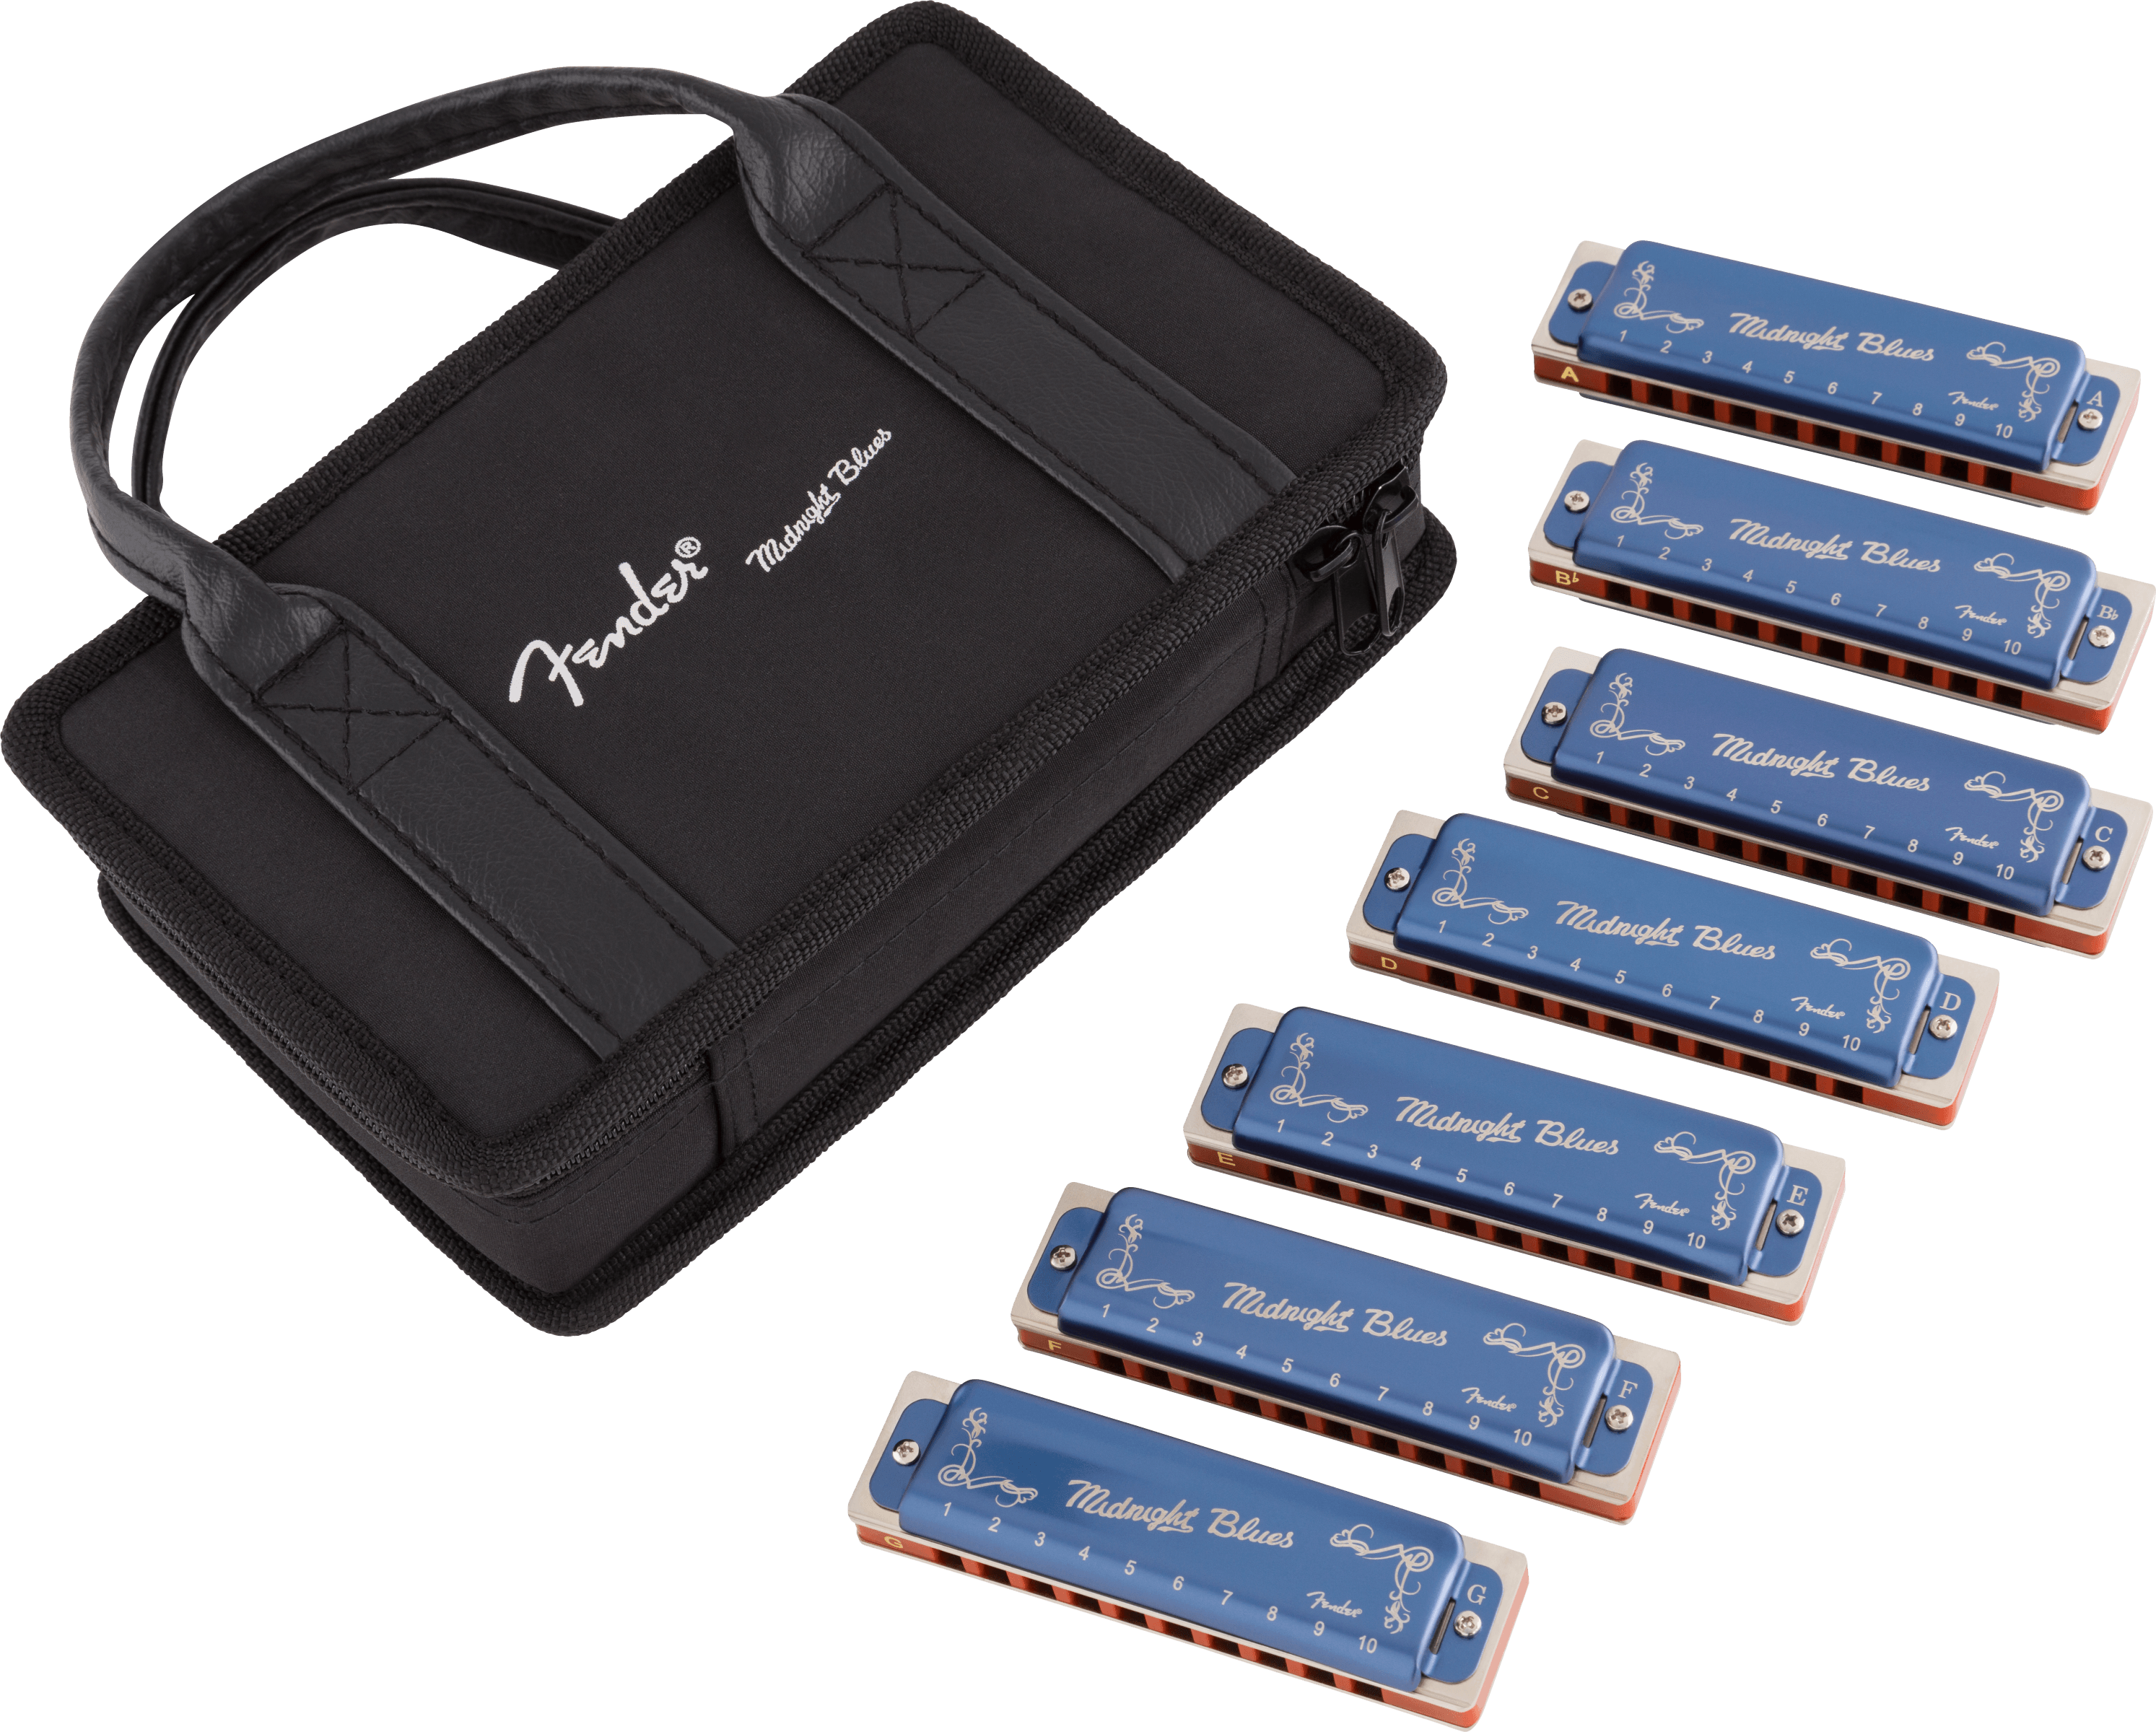 FENDER-Midnight-Blues-Harmonica-Pack-of-7-with-Case-0990702149-sku-550022824